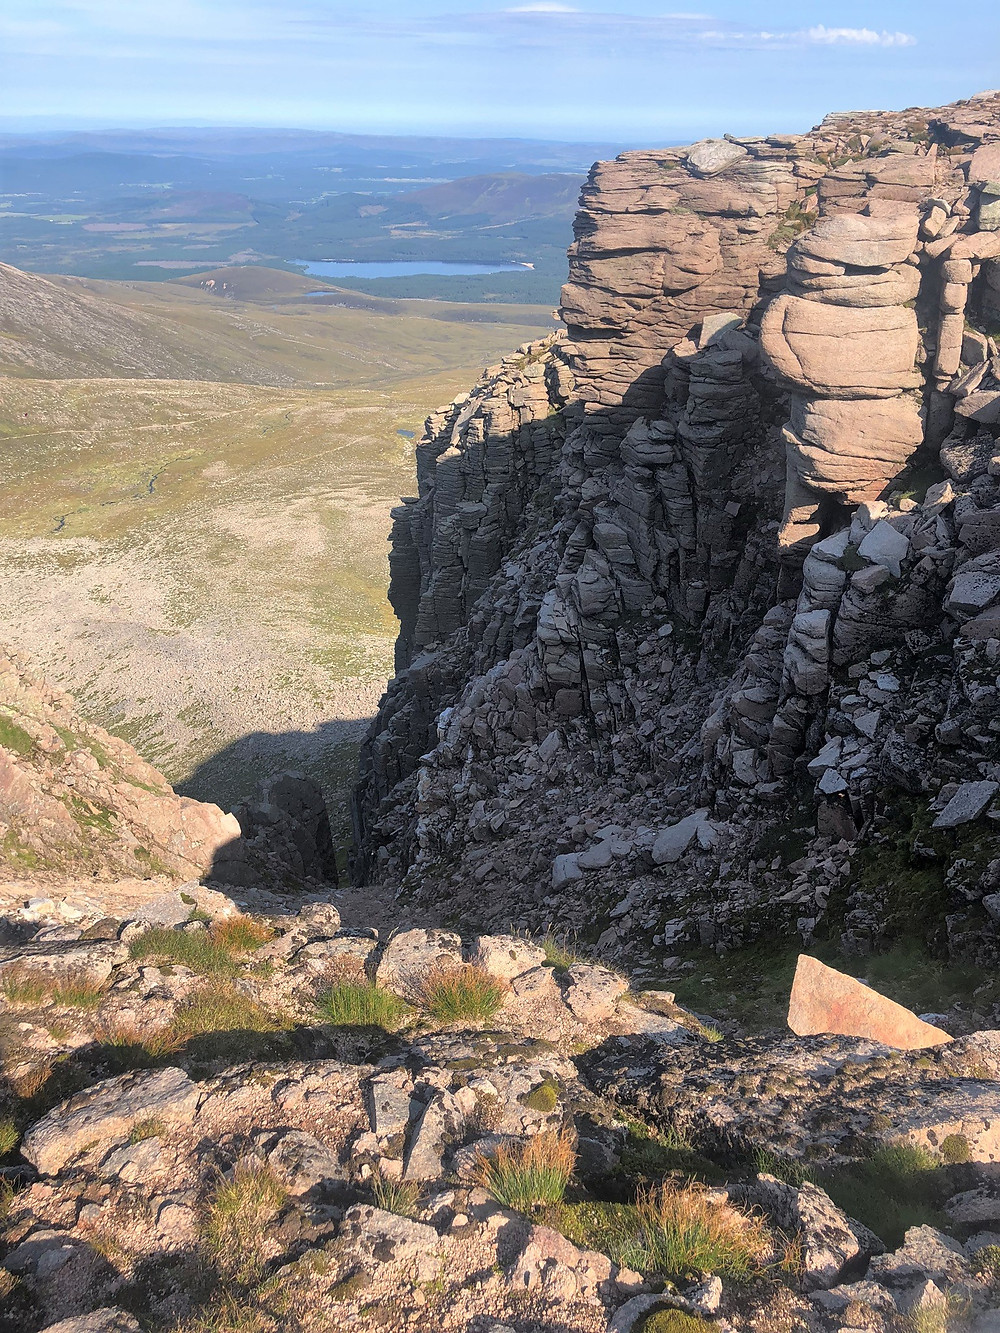 At the summit of Cairn Lochan cliffs. Cairn Gorm hike via the Northern Corries